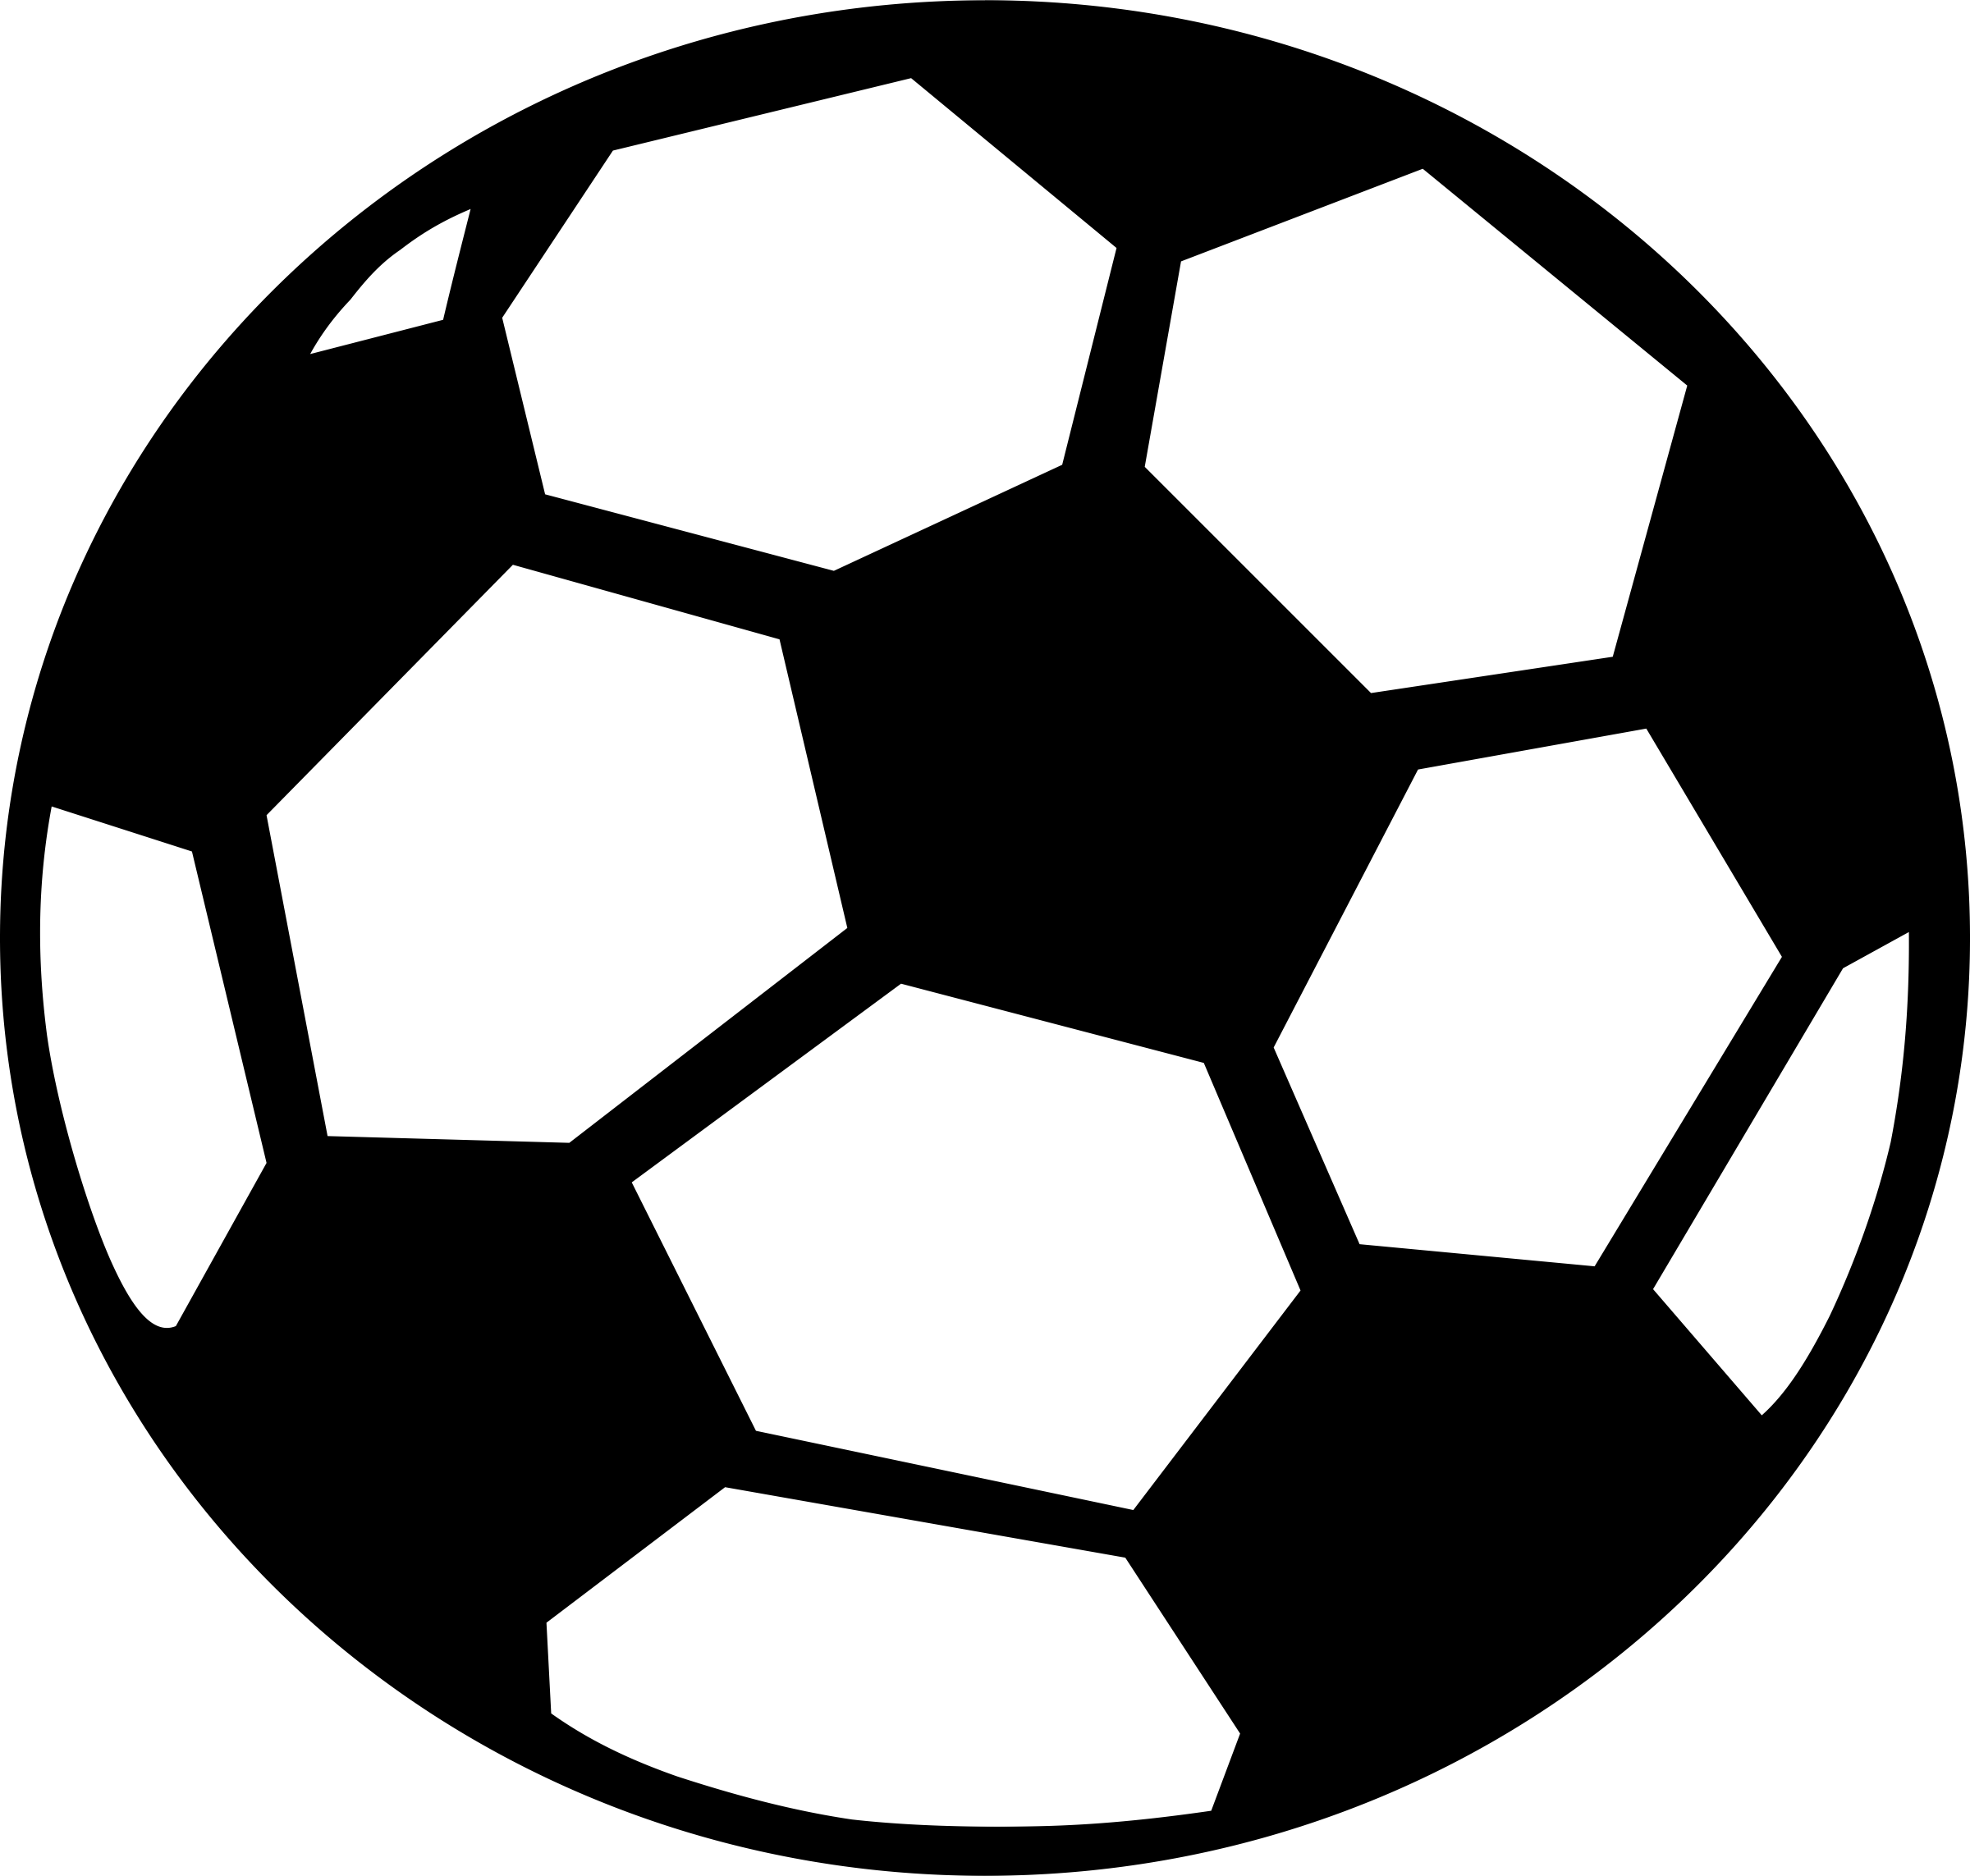 Soccer ball clipart big. Graphic royalty free download